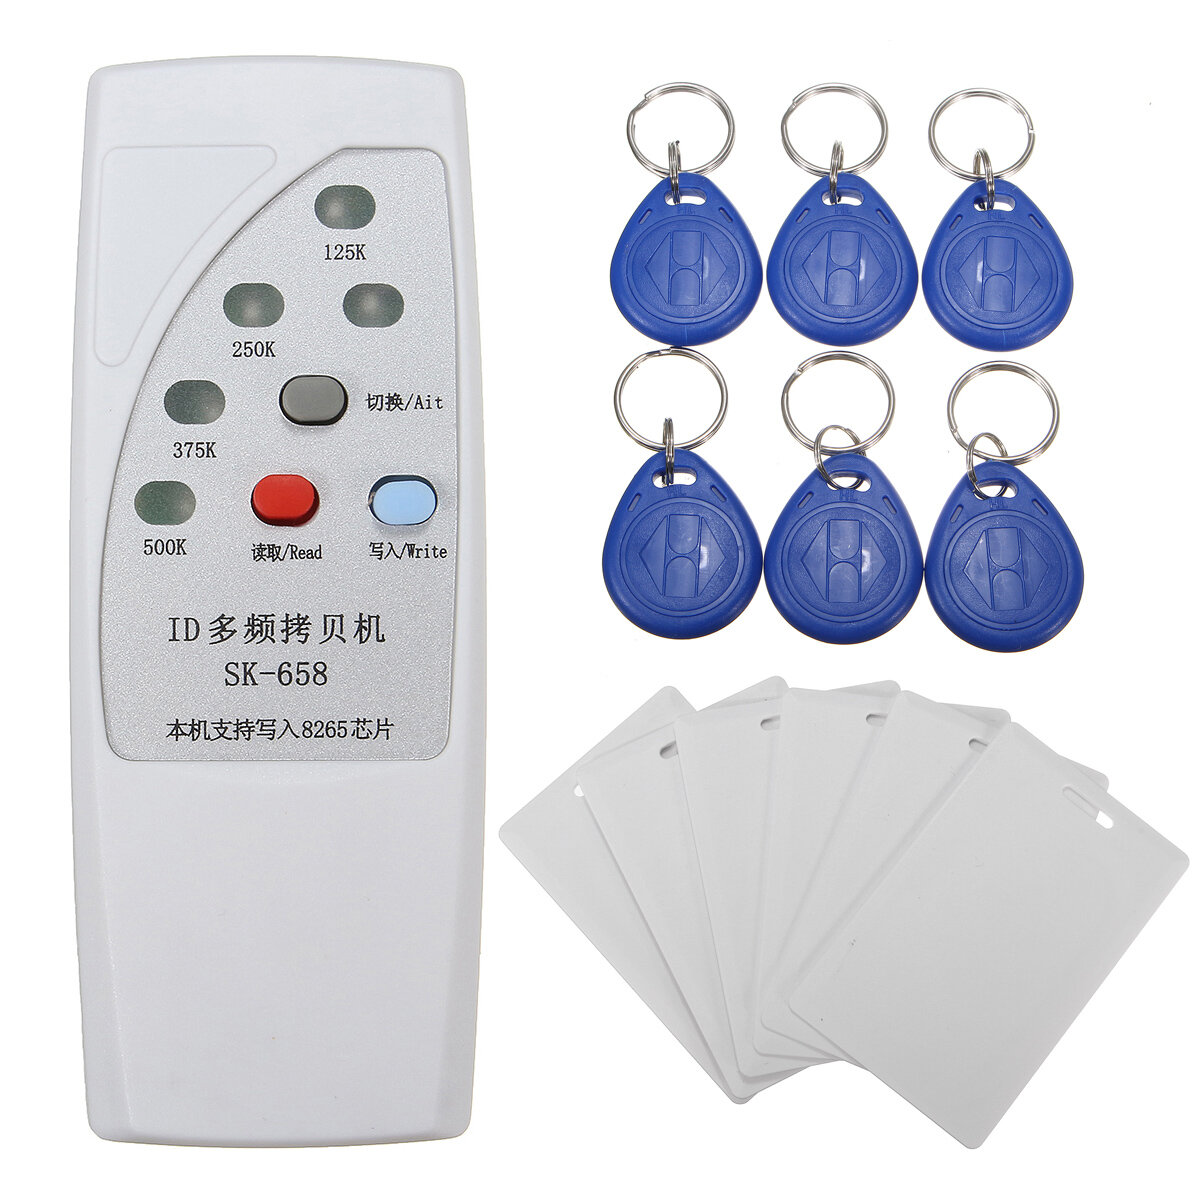 DANIU SK-658 13Pcs 125KHz RFID ID Card Reader Writer Copier Duplicator with 6 Cards/Tags Kit